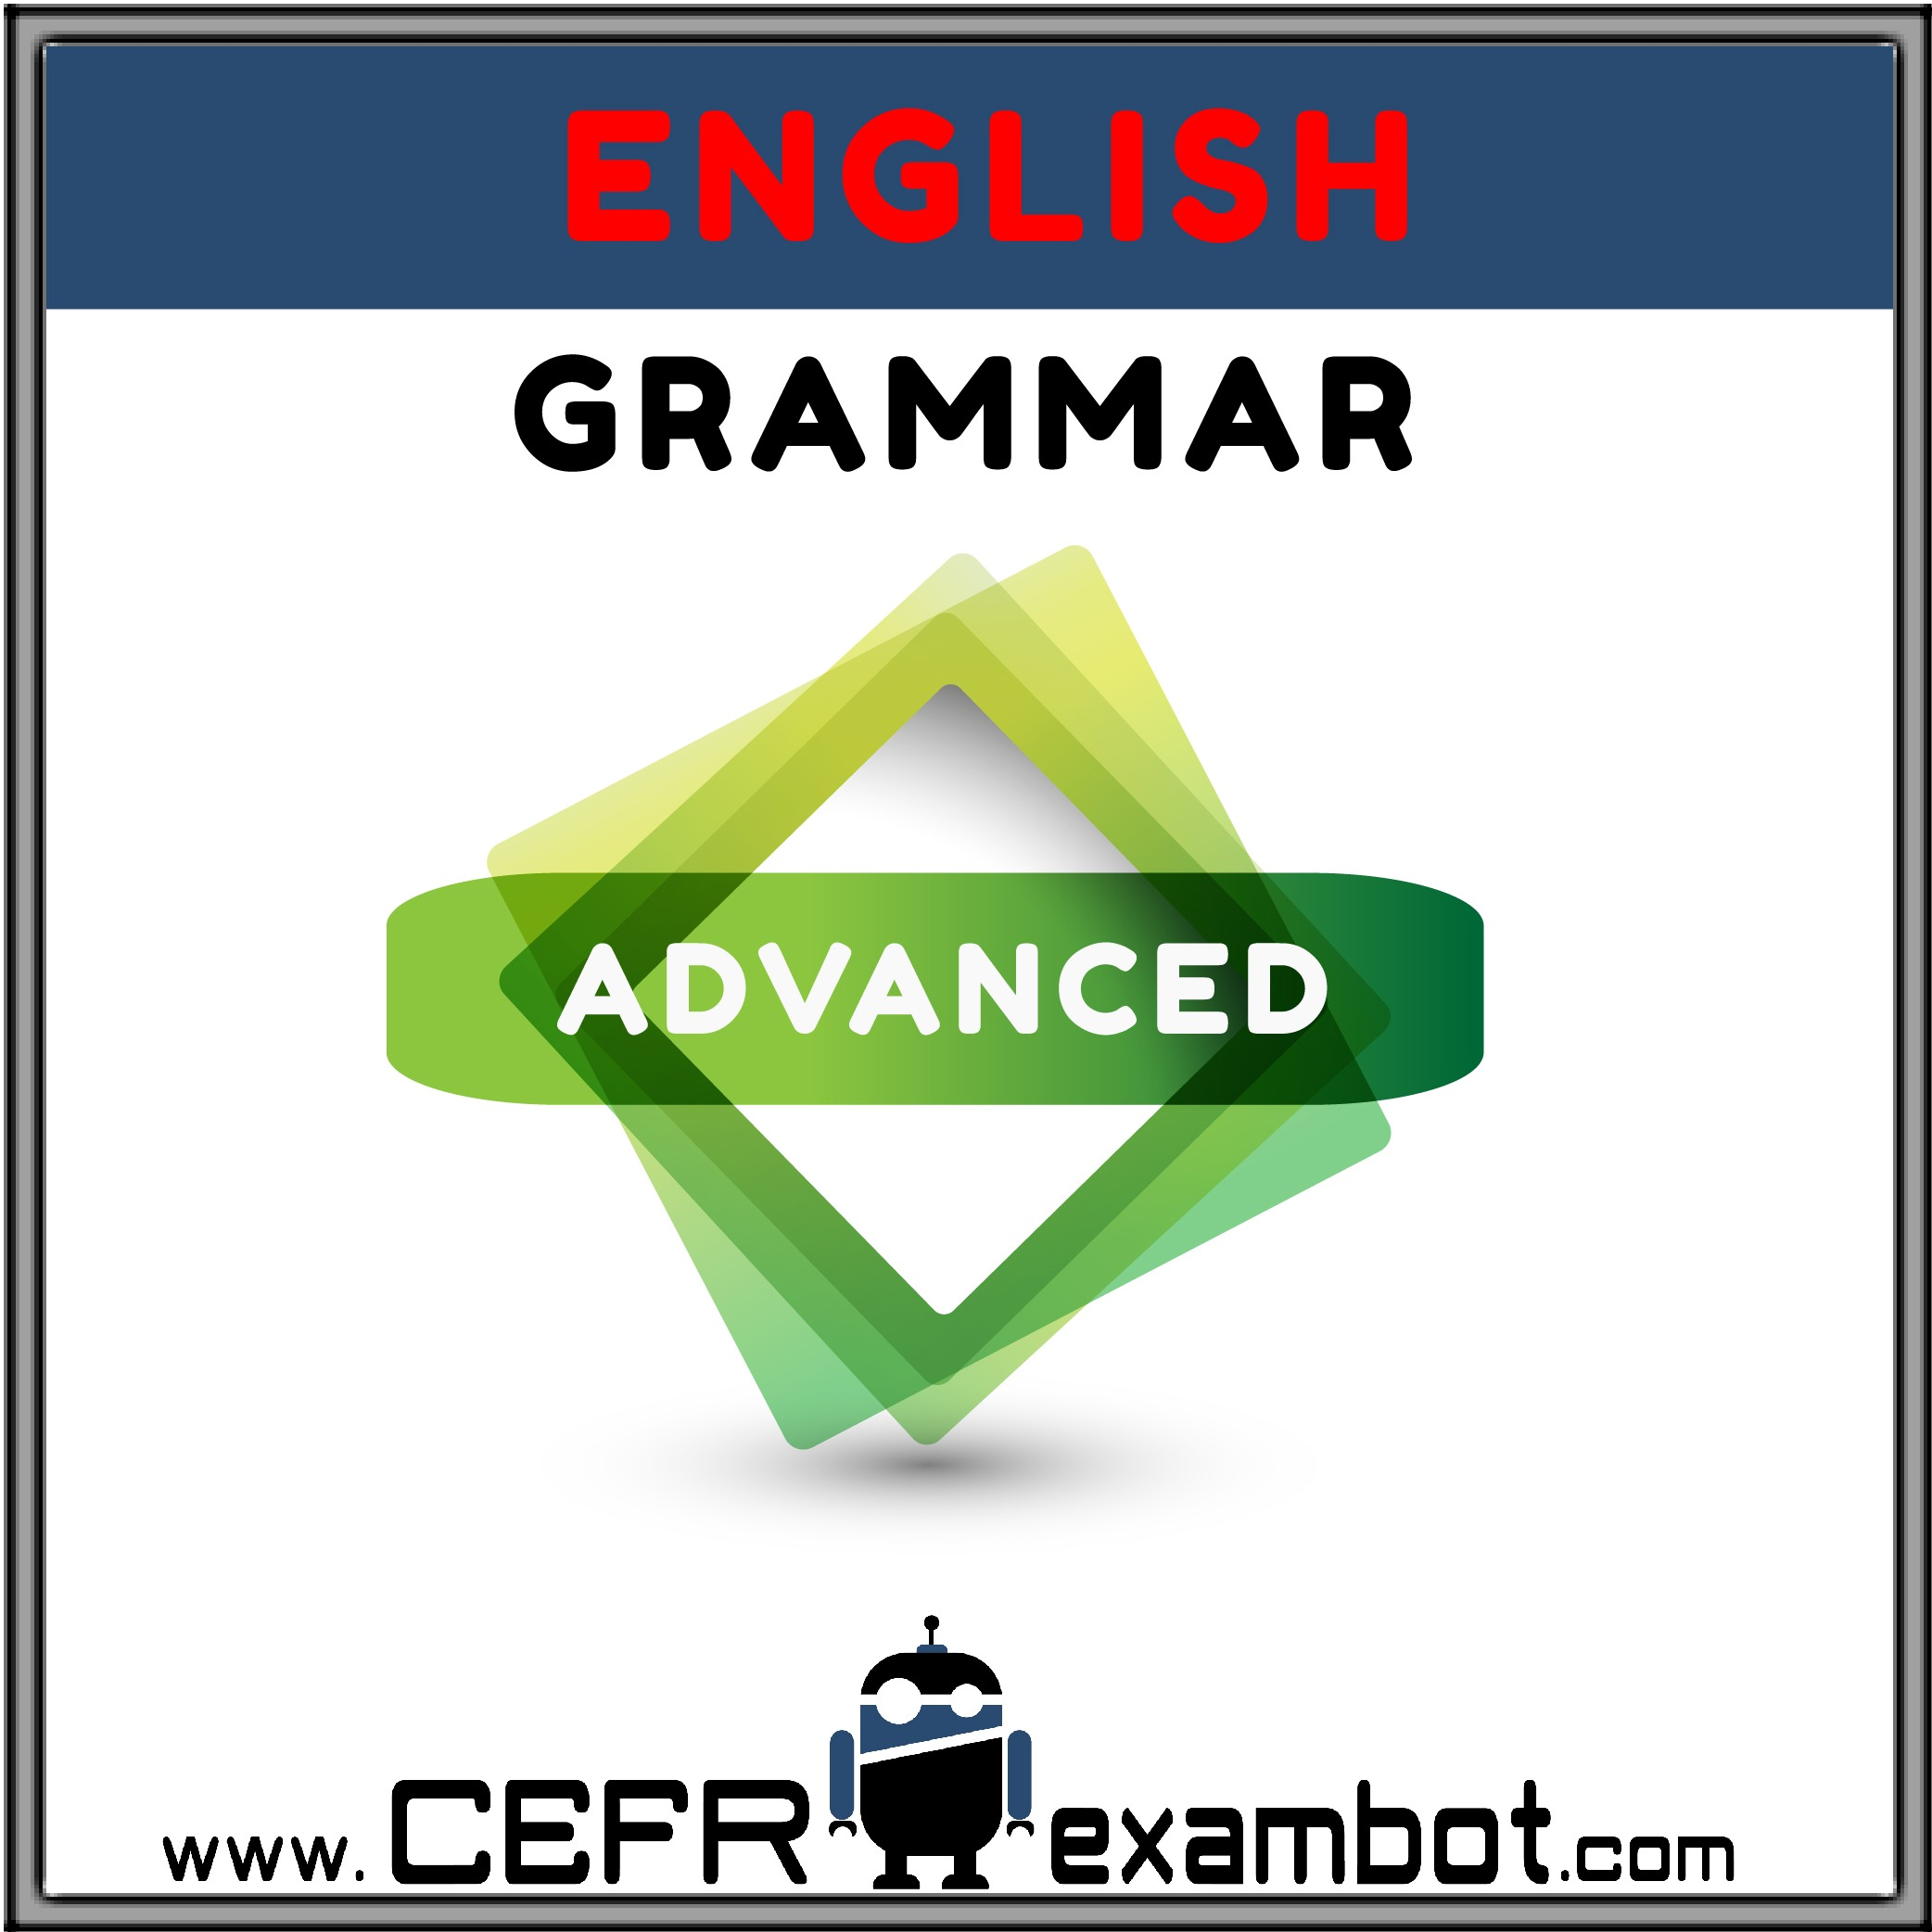 Advanced English Grammar www.CEFRexambot.com2